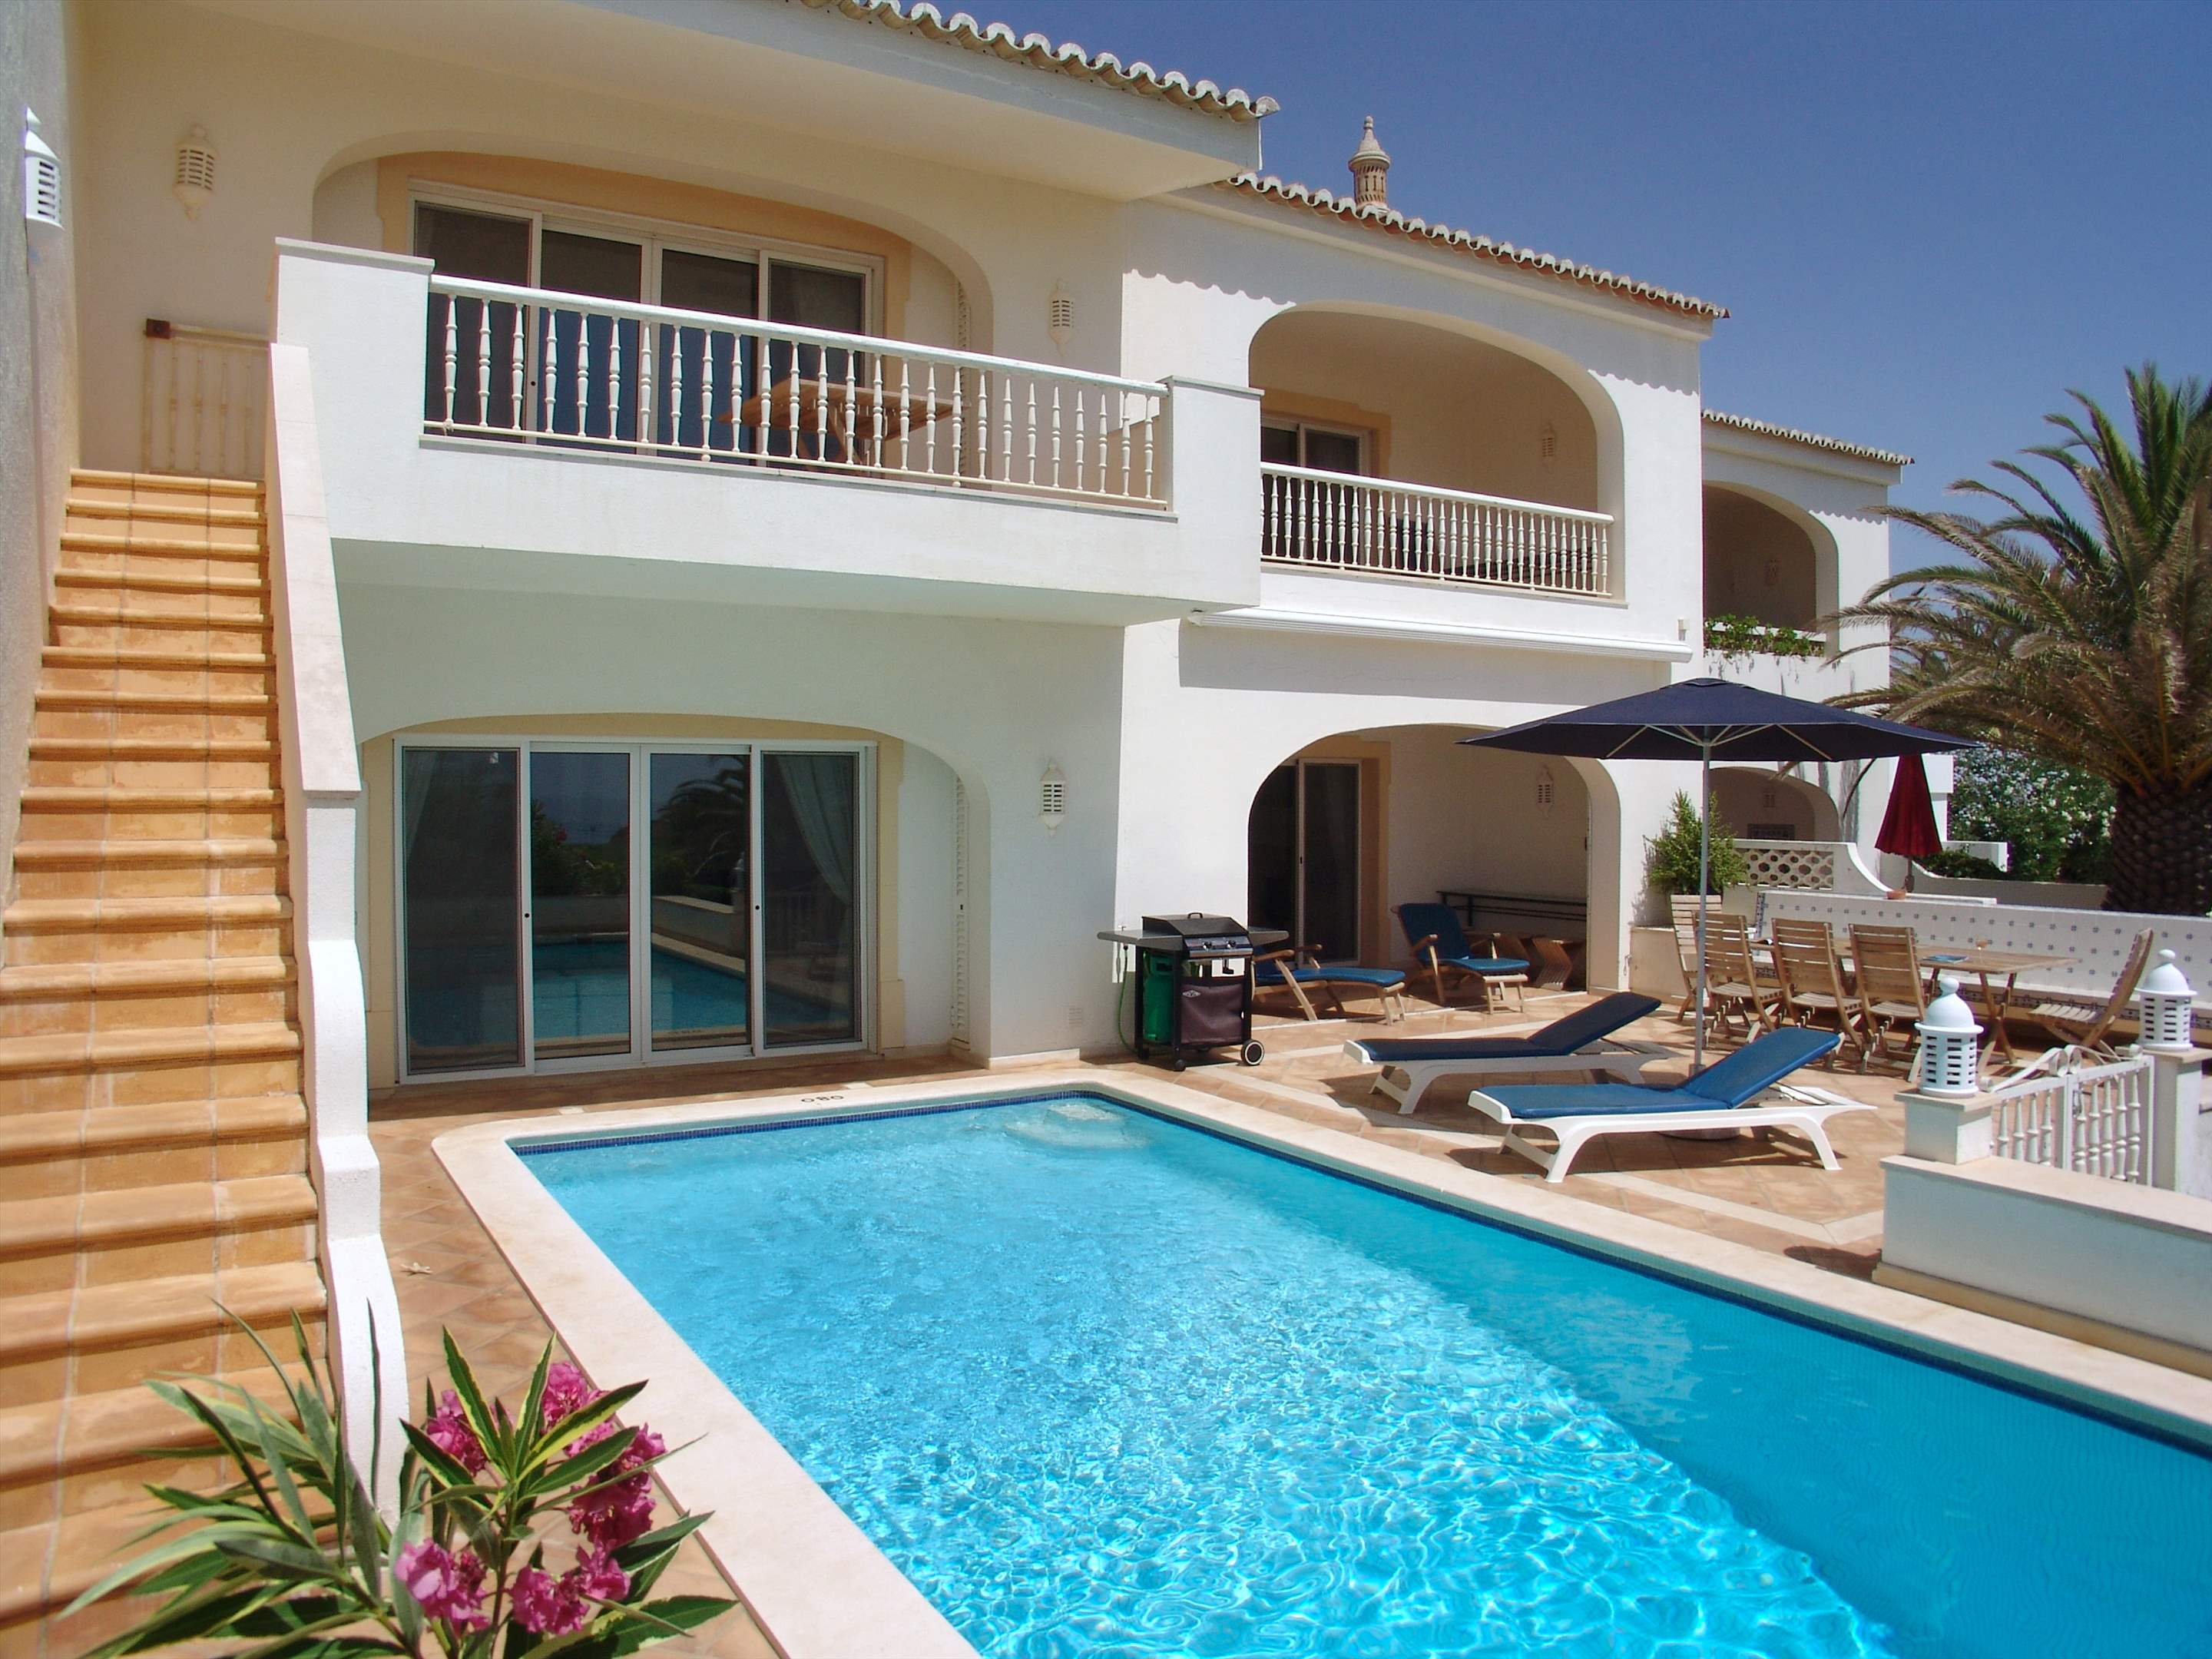 Villas Louisa, 4 Bedroom, 4 bedroom villa in Vale do Lobo, Algarve